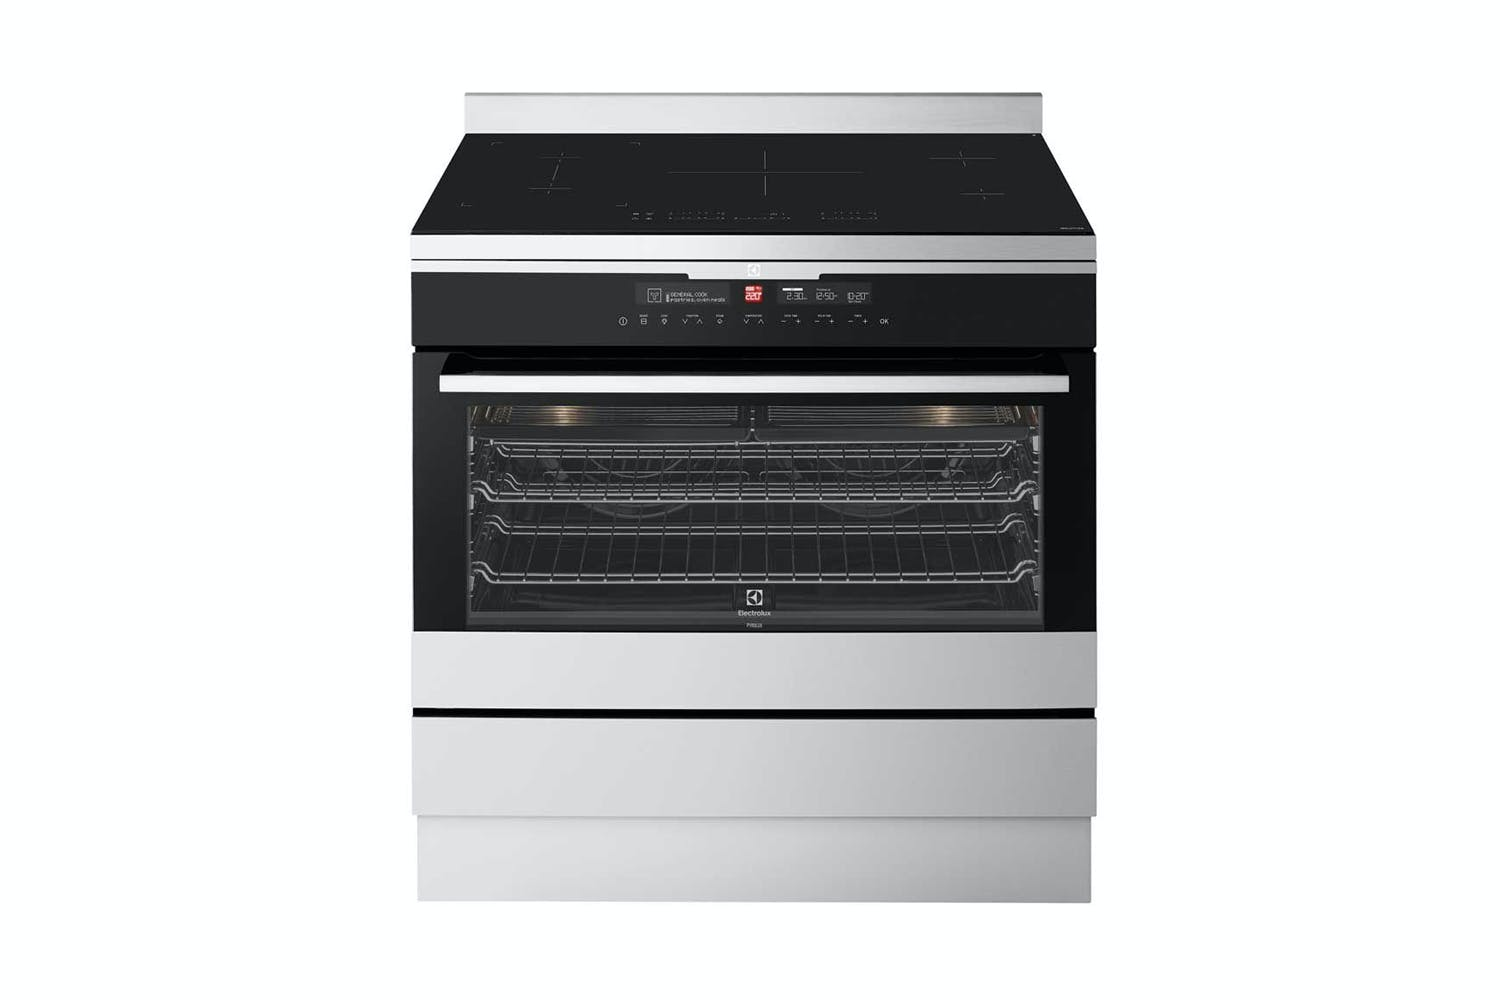 Electrolux 90cm Pyrolytic Oven With Induction Cooktop Harvey Norman New Zealand